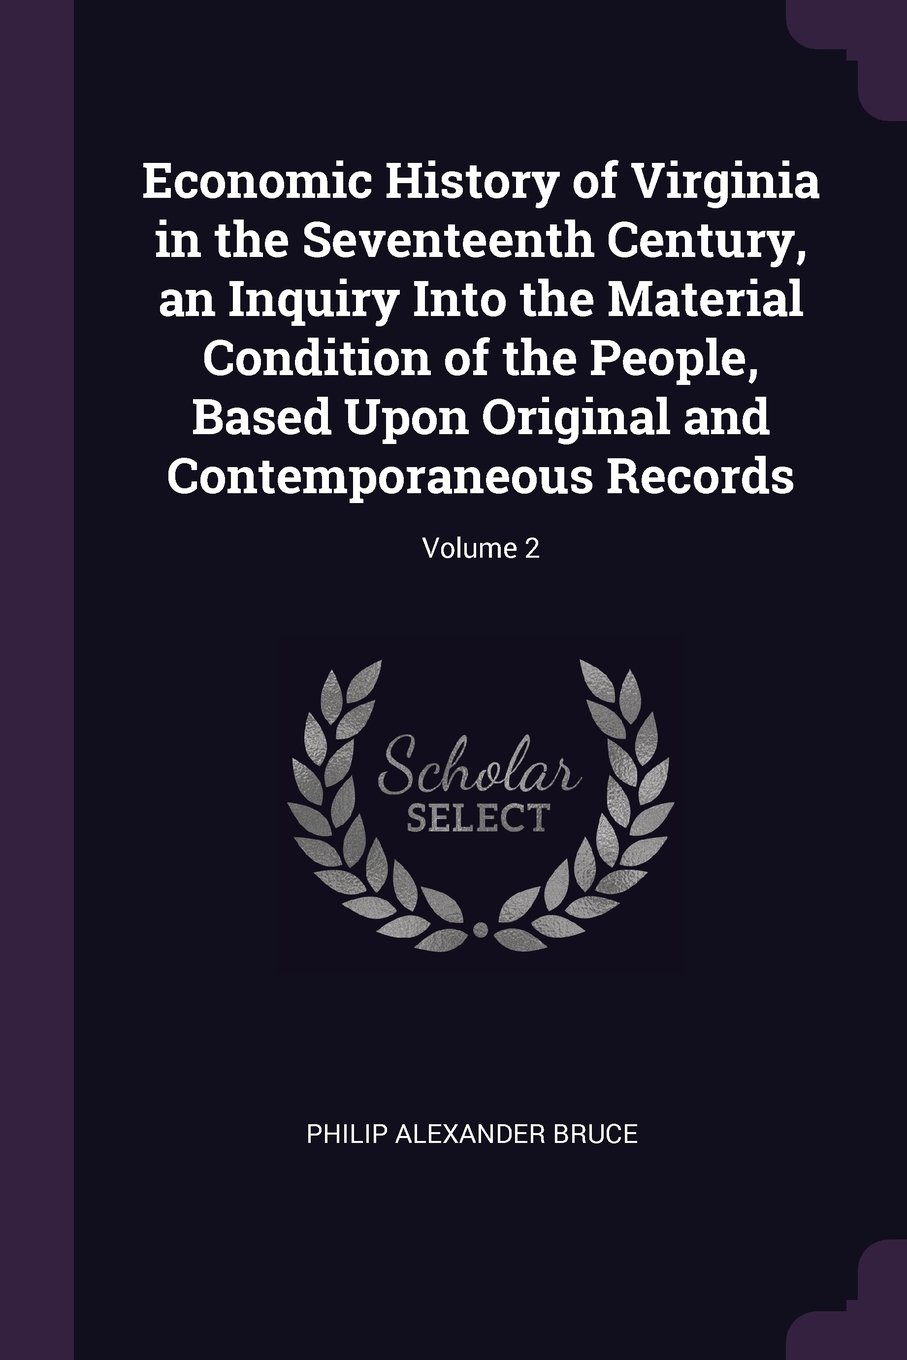 Economic History of Virginia in the Seventeenth Century, an Inquiry Into the Material Condition of the People, Based Upon Original and Contemporaneous Records; Volume 2 pdf